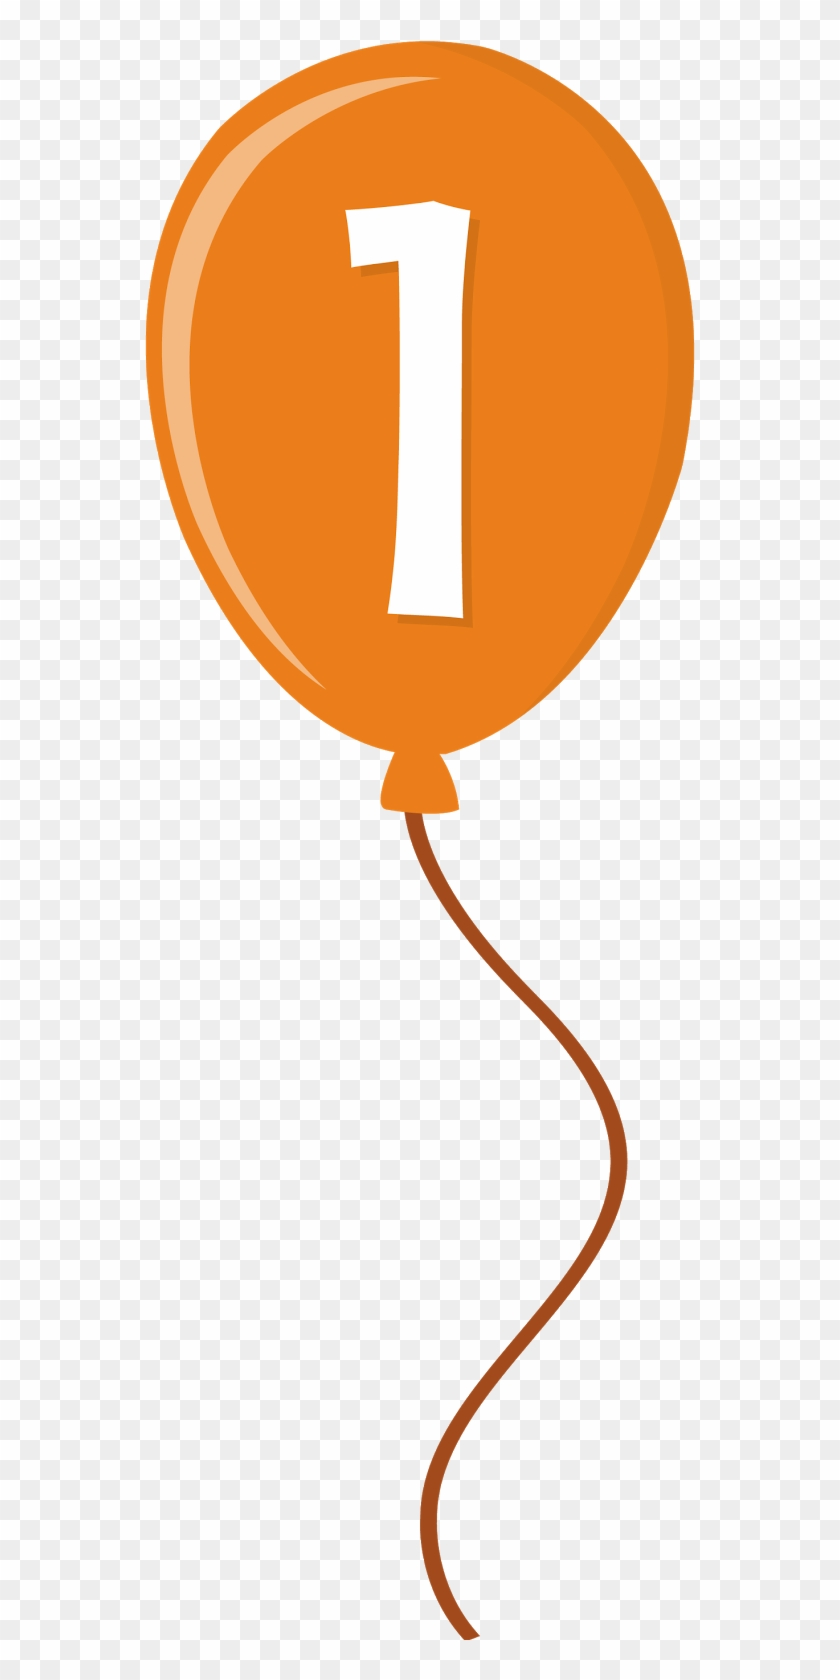 Orange Clipart Baloon - Balloon With Number 1 Clipart #175275